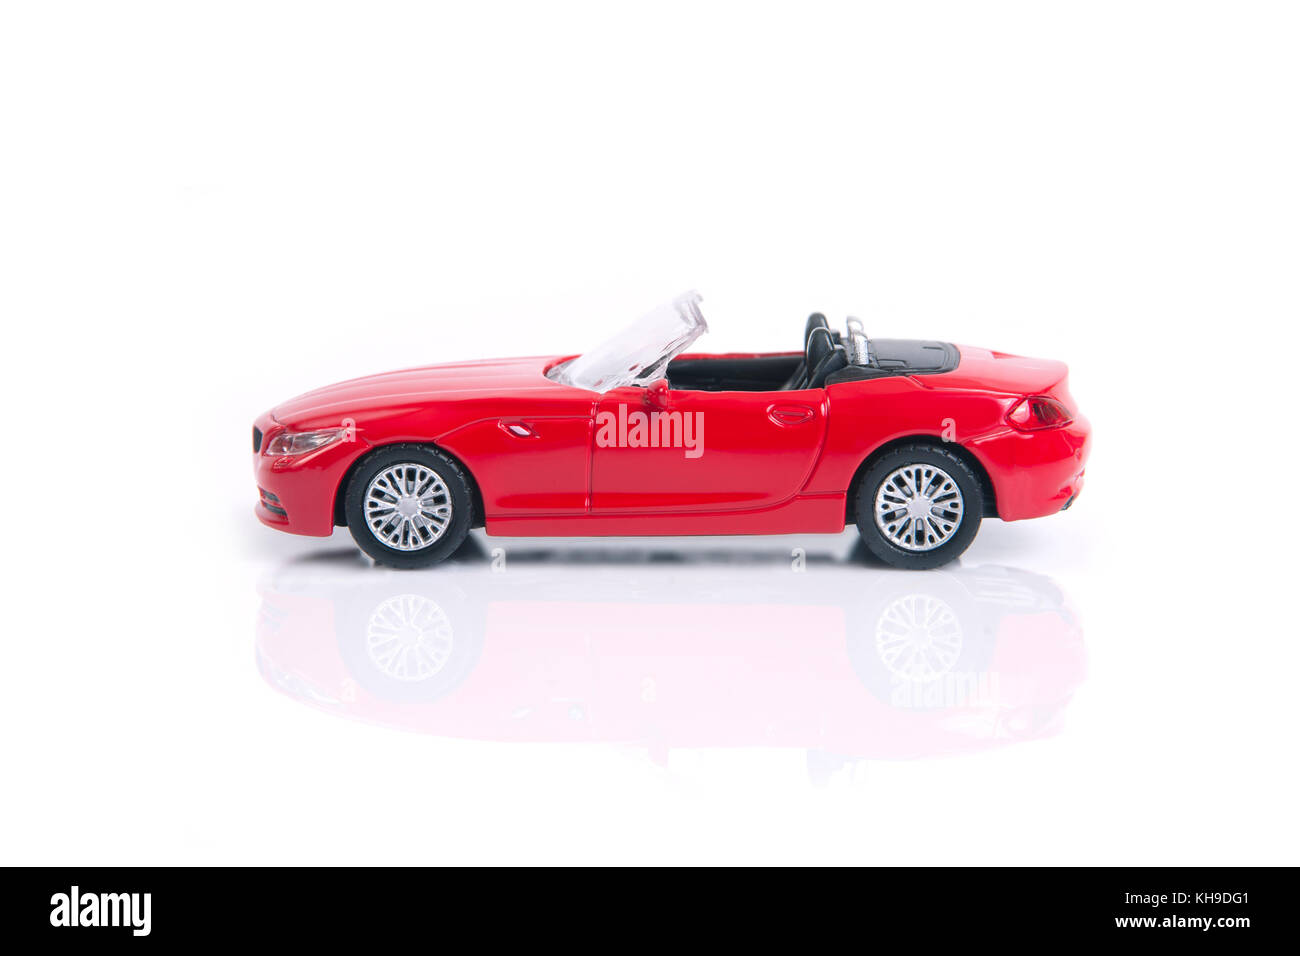 Red toy or model convertible sport car on white background. - Stock Image